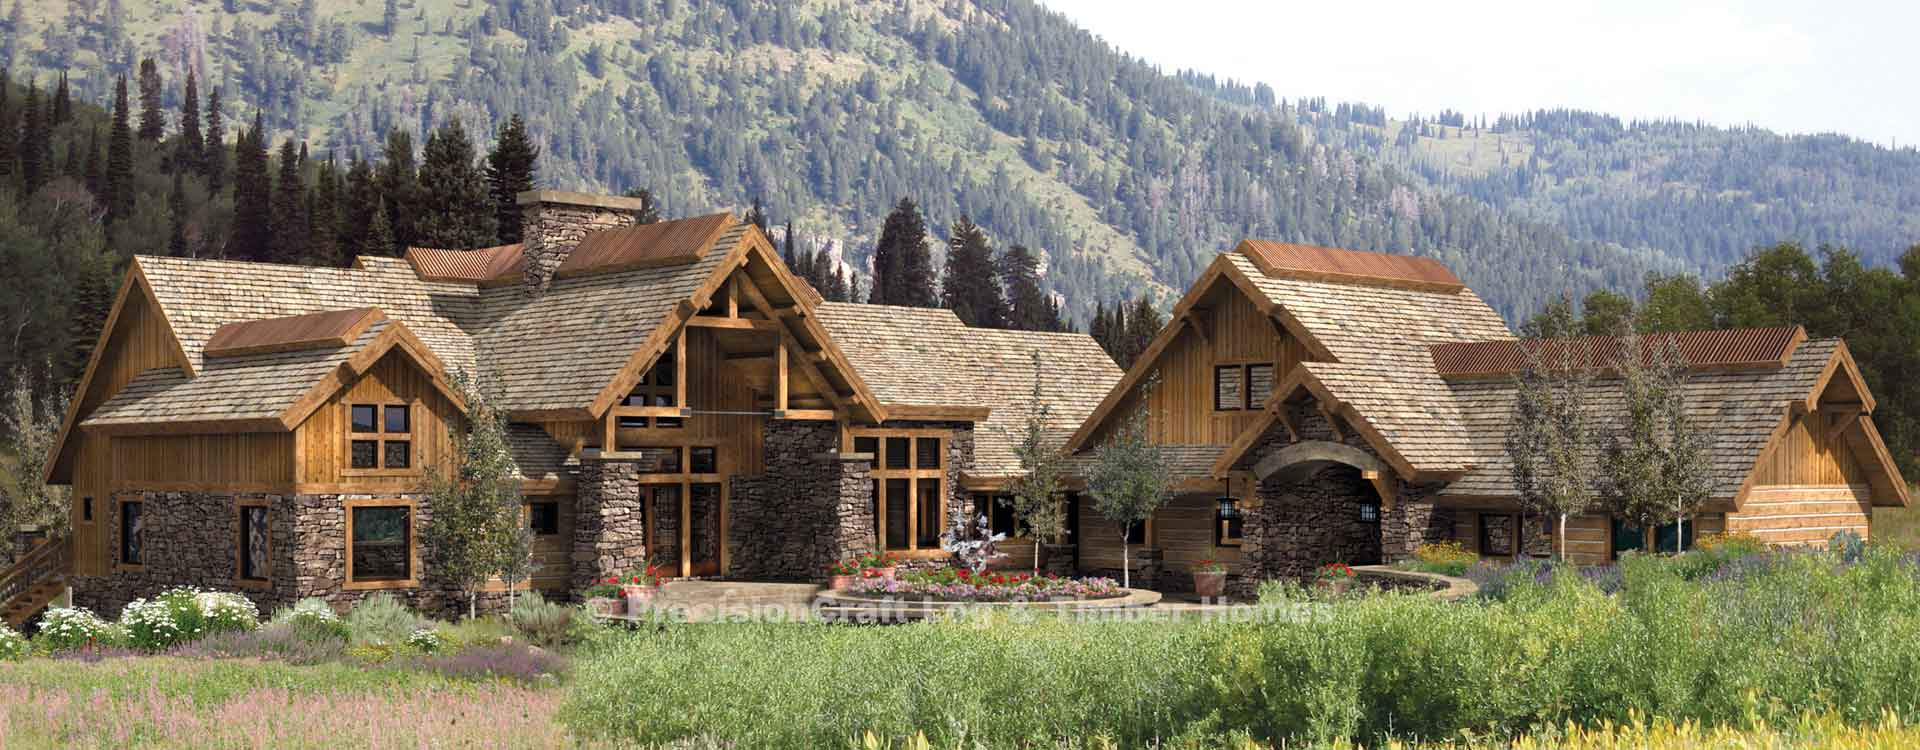 Coeur d 39 alene lodge luxury timber frame home plan for Luxury timber homes